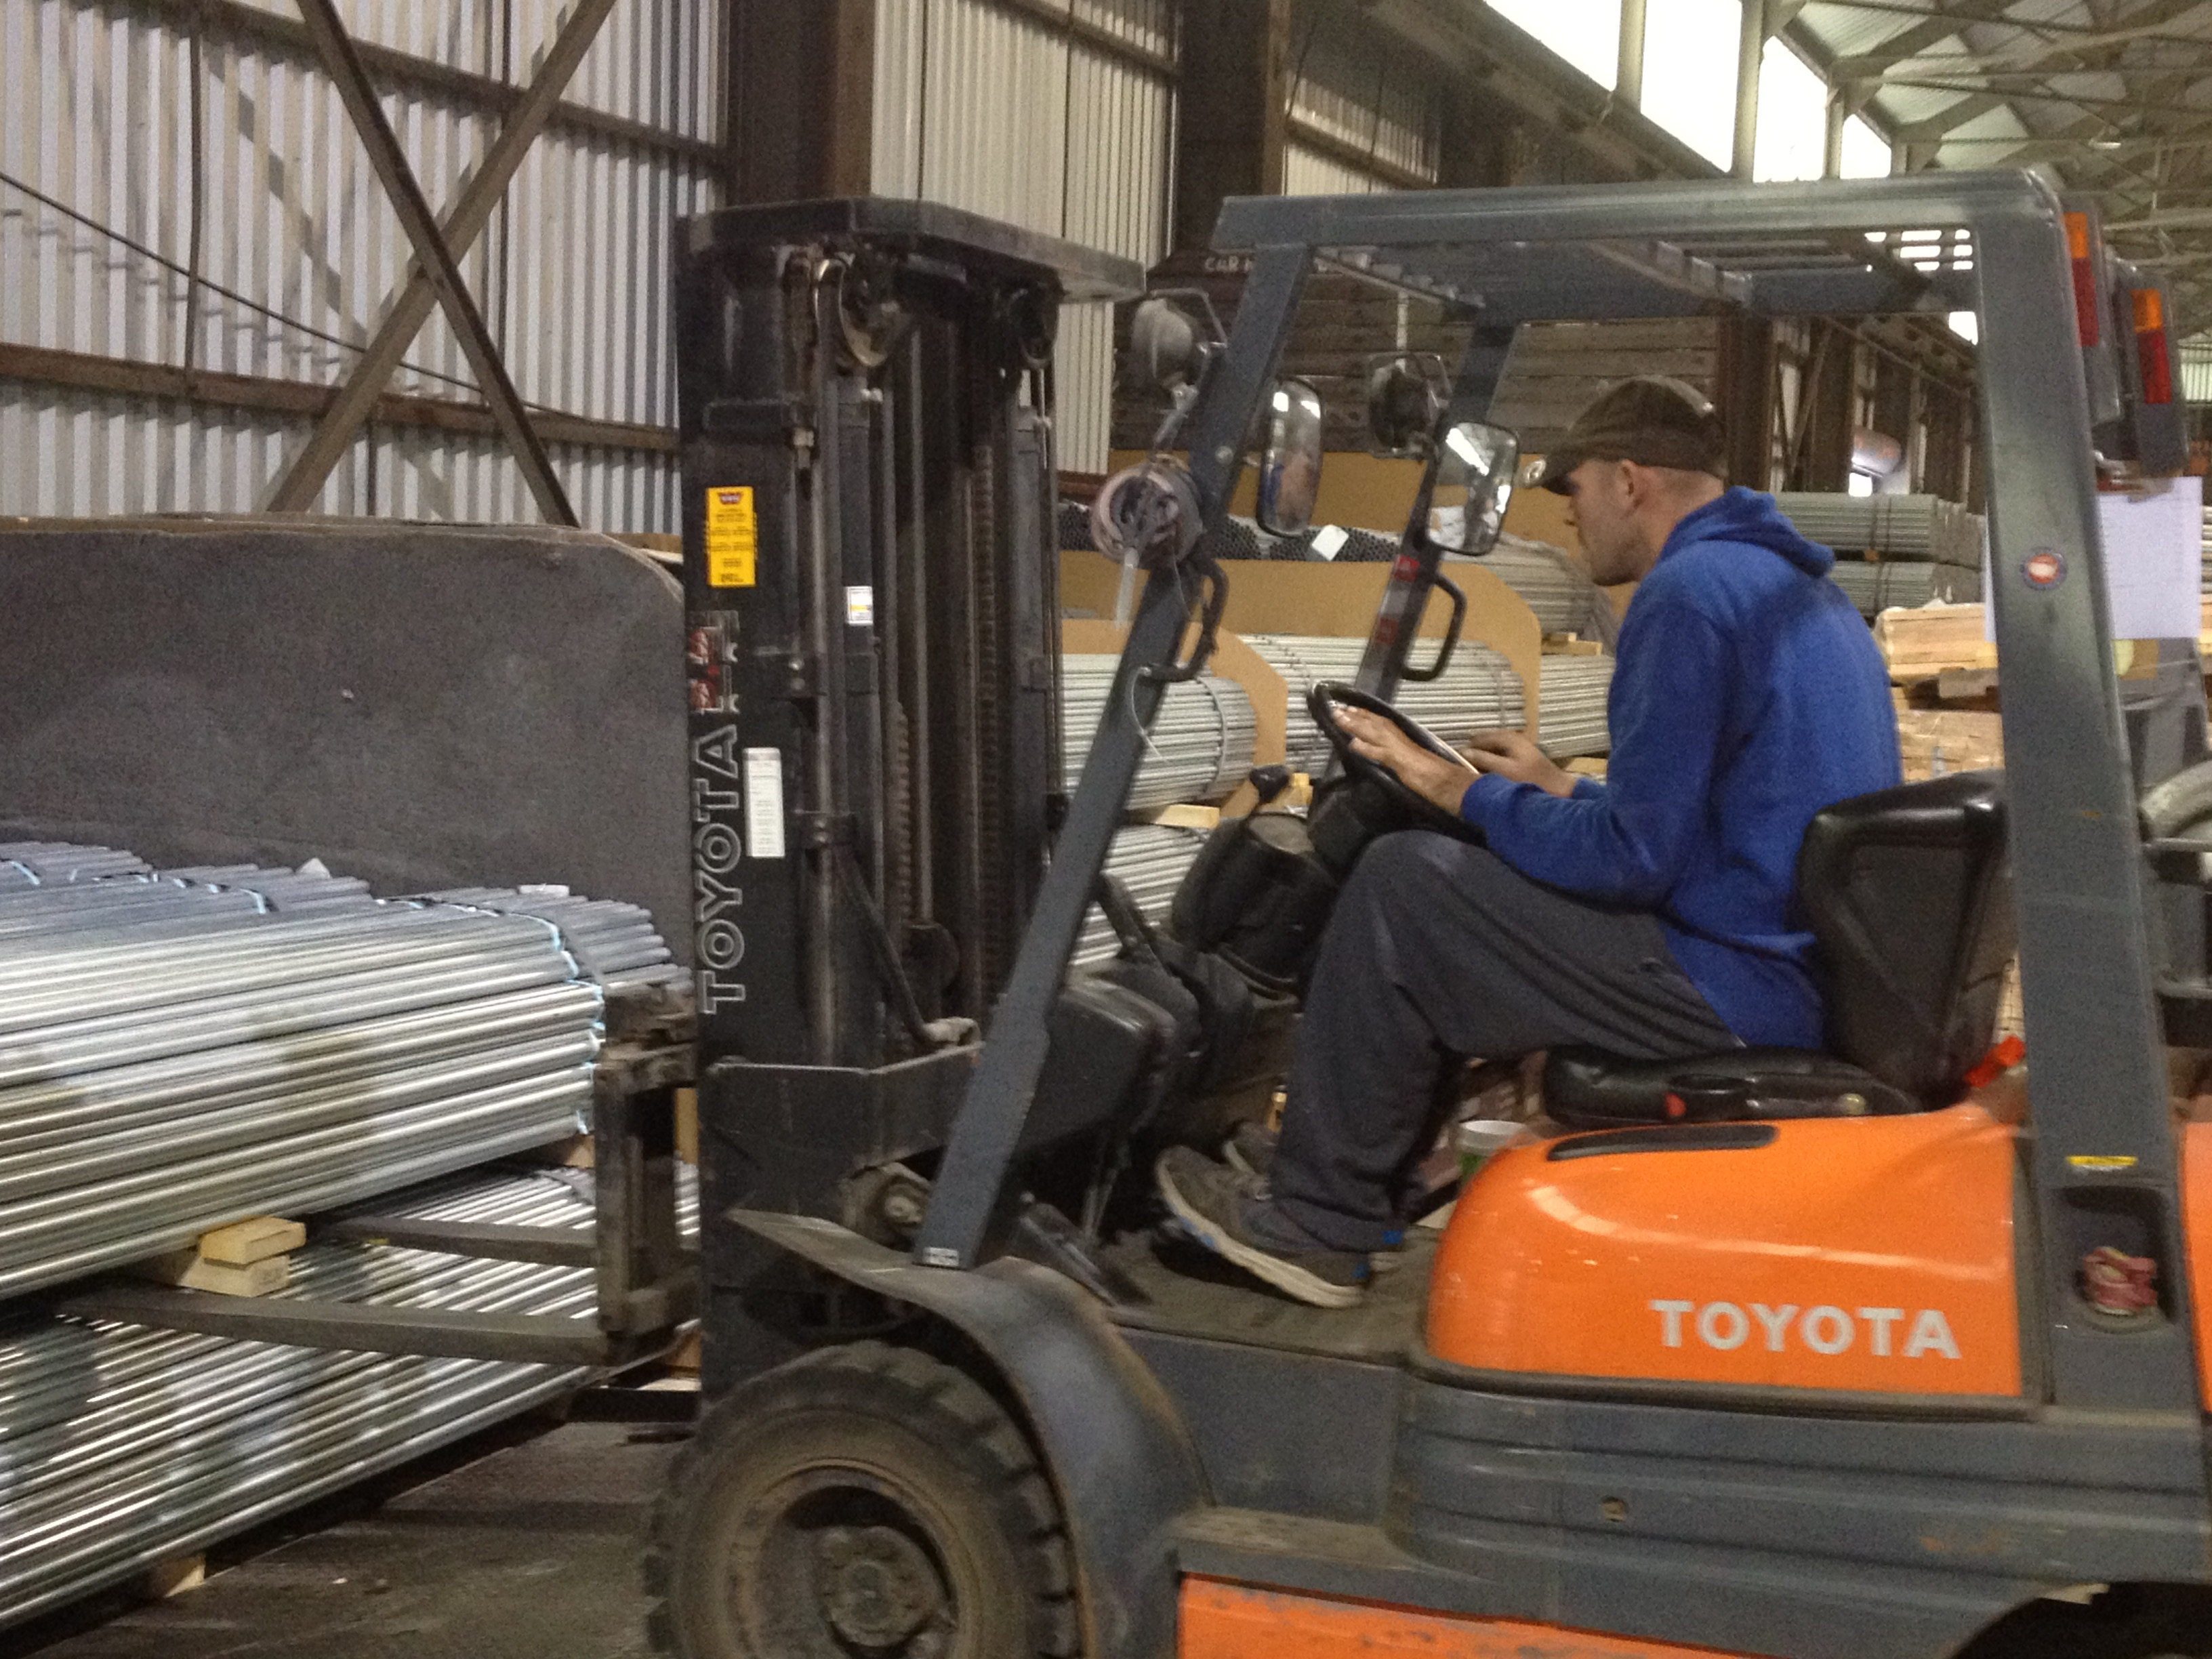 A person using a forklift